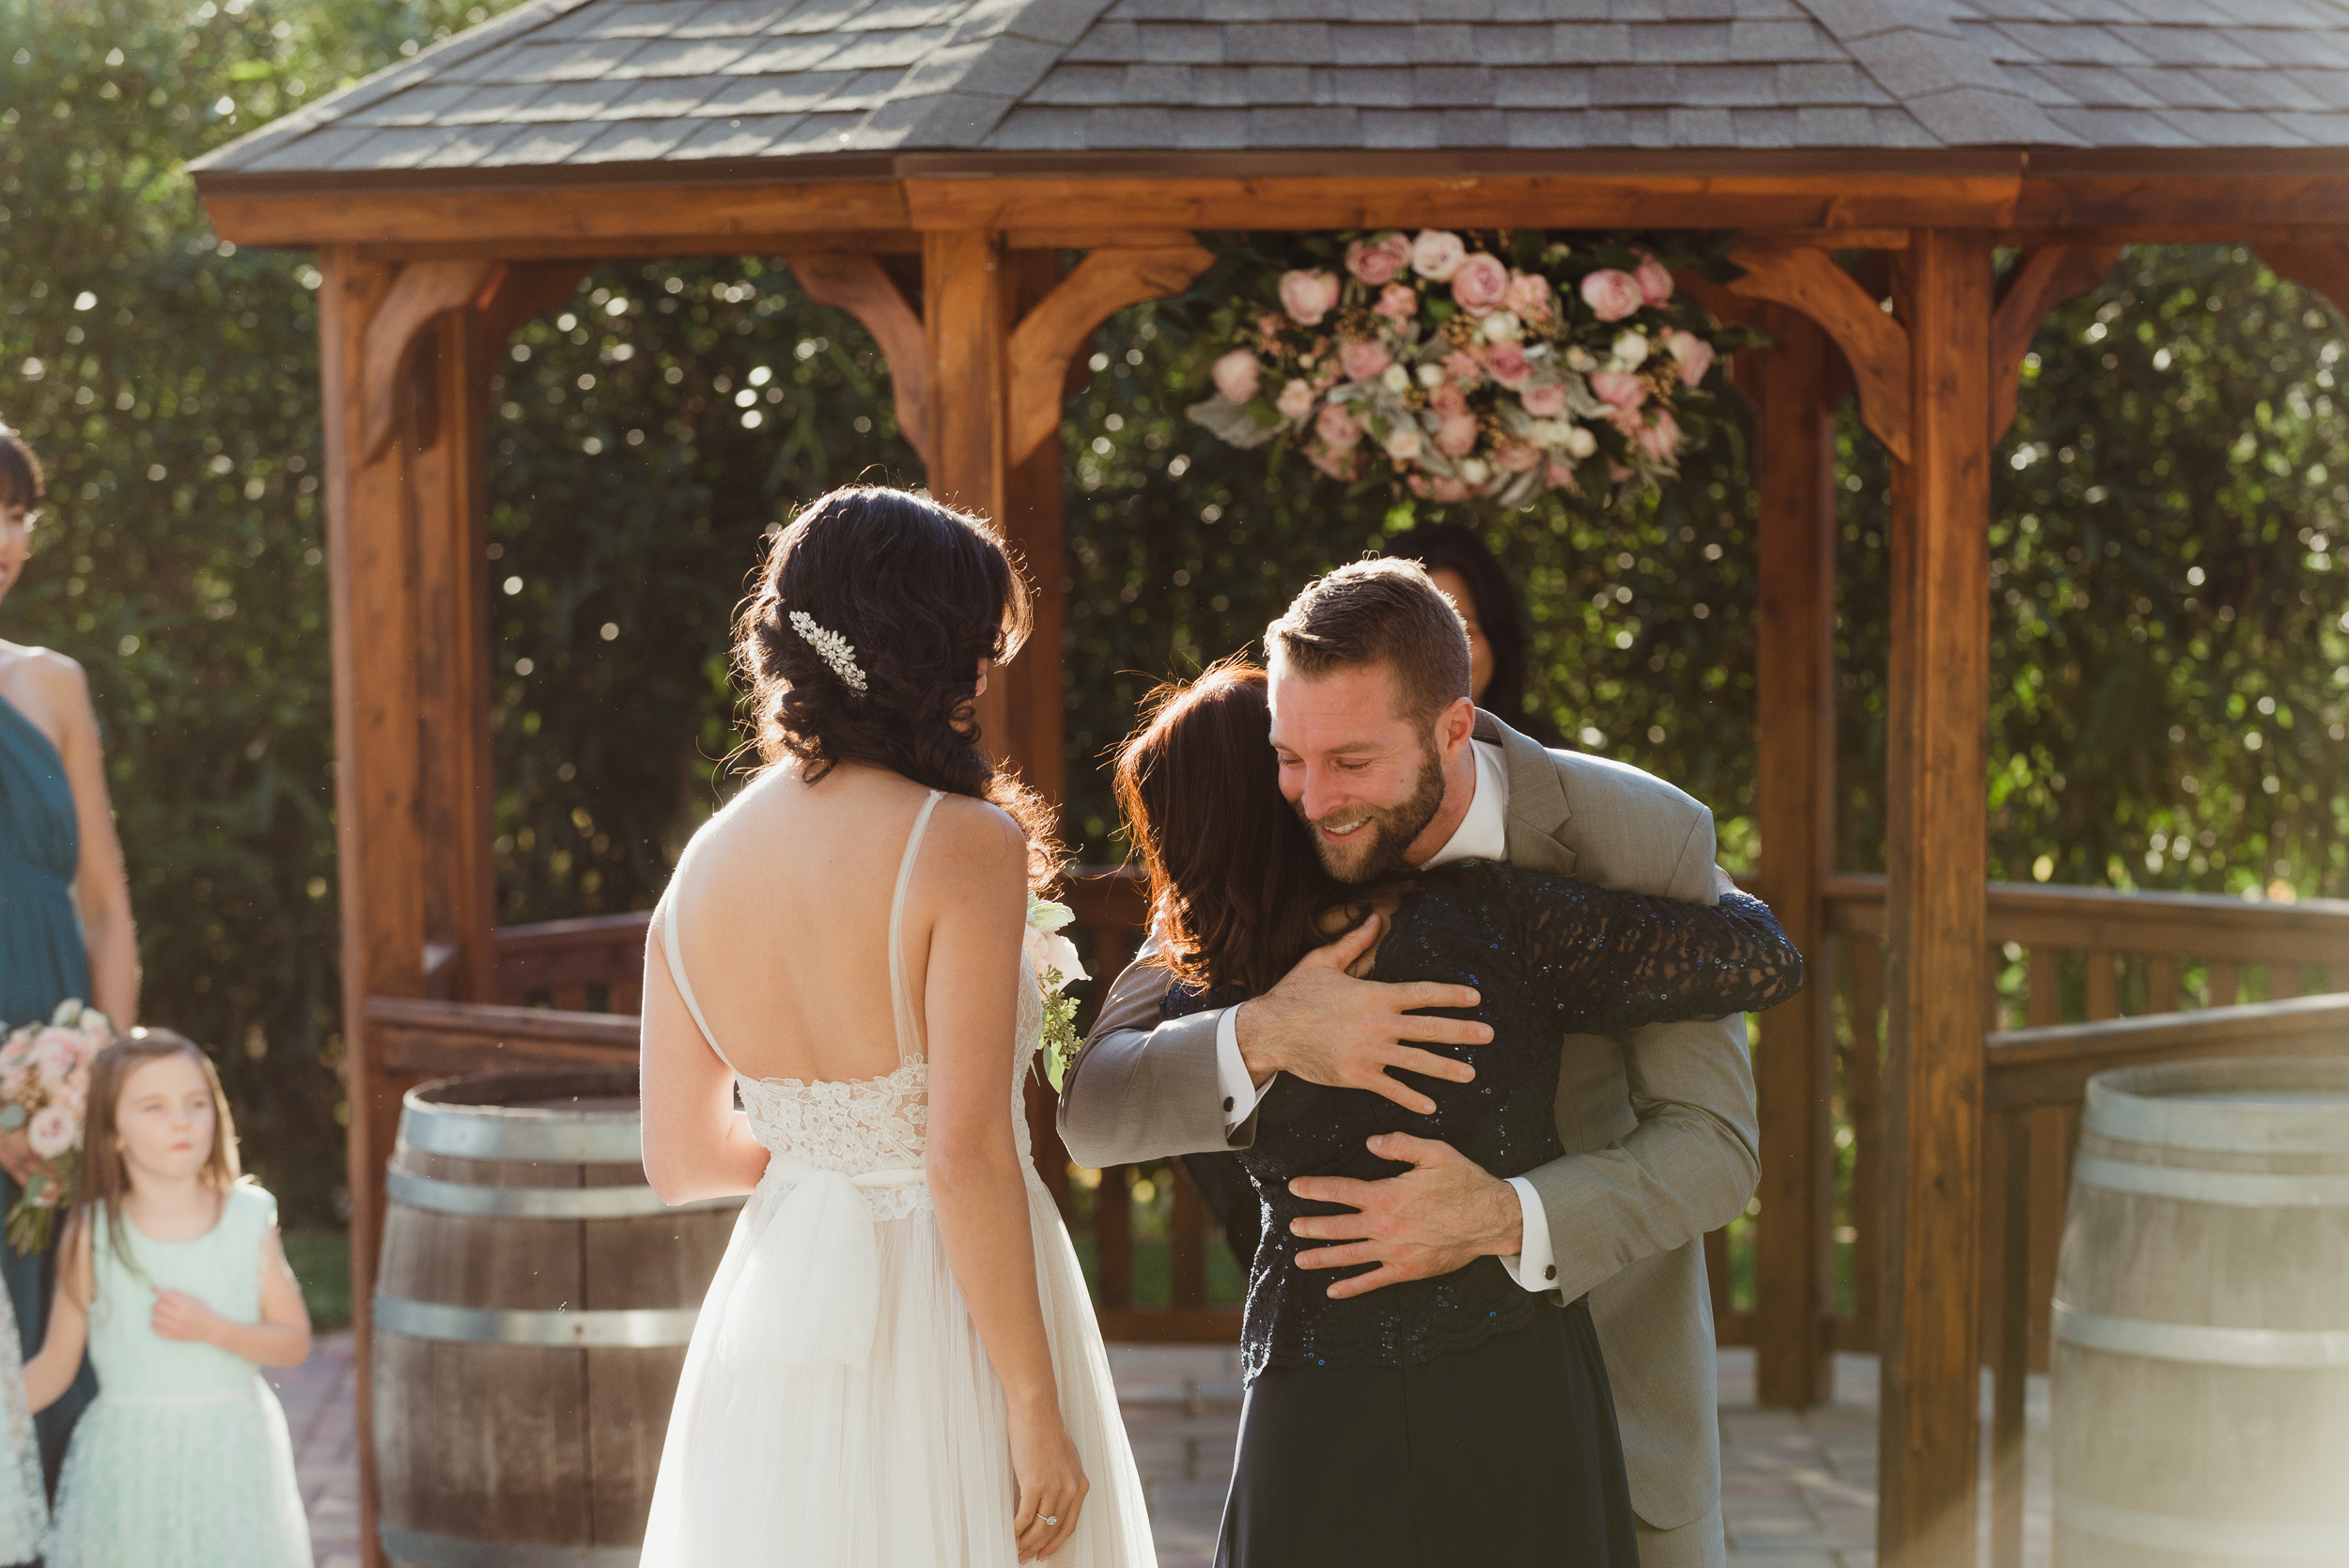 22-sunol-elliston-vineyard-wedding-vivianchen-159.jpg